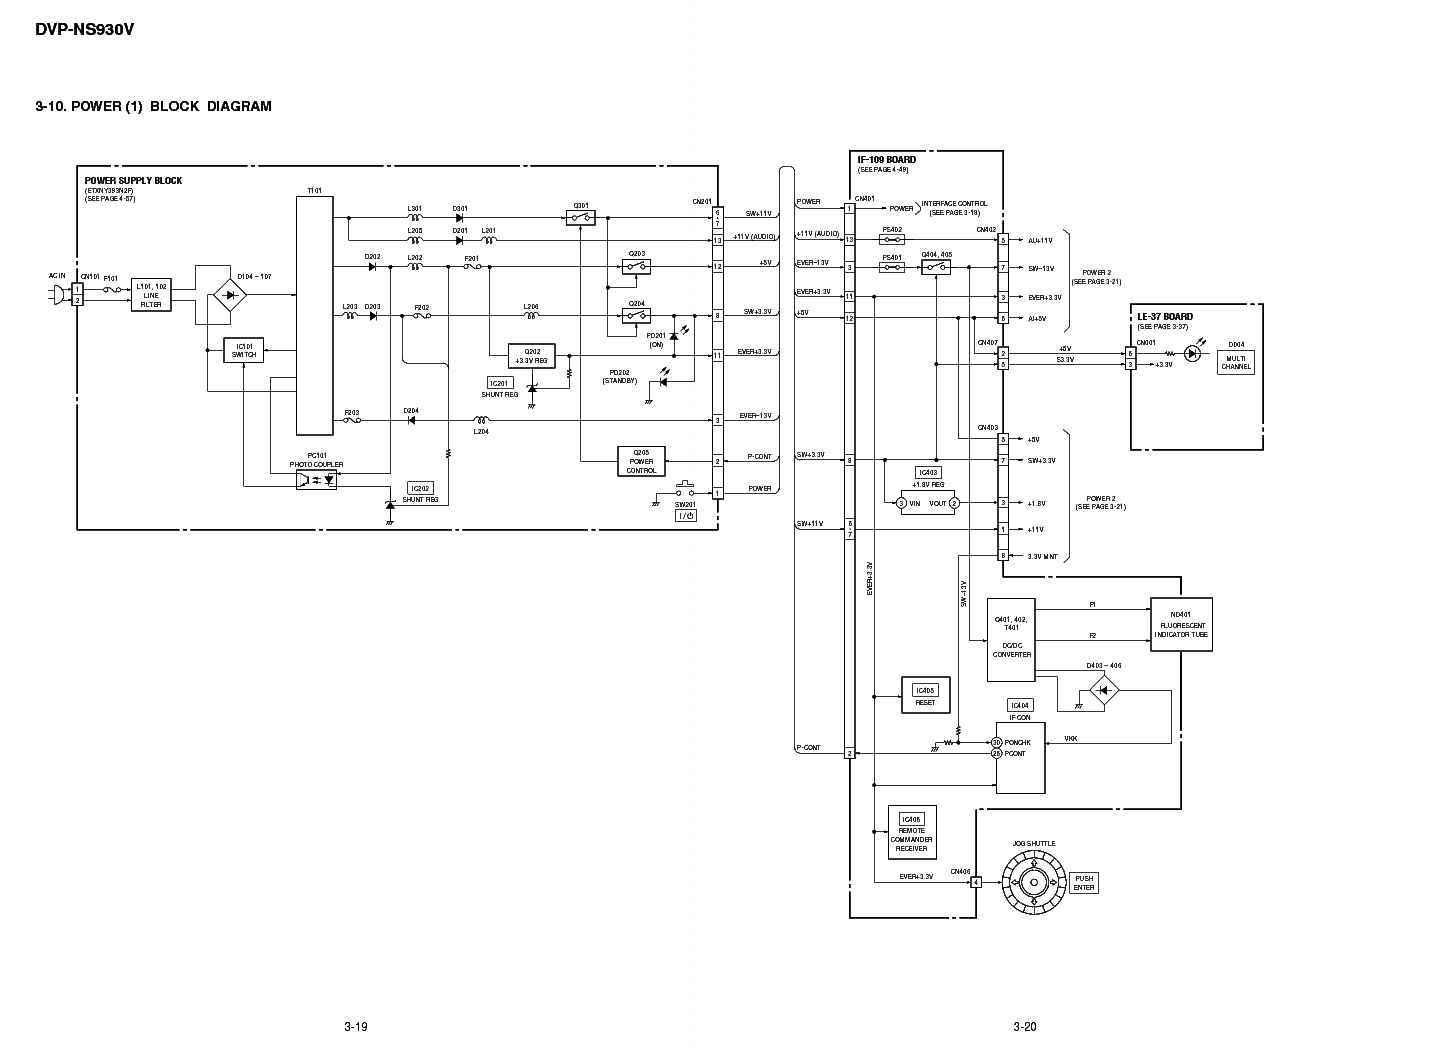 SONY DVP-NS930V Service Manual download, schematics